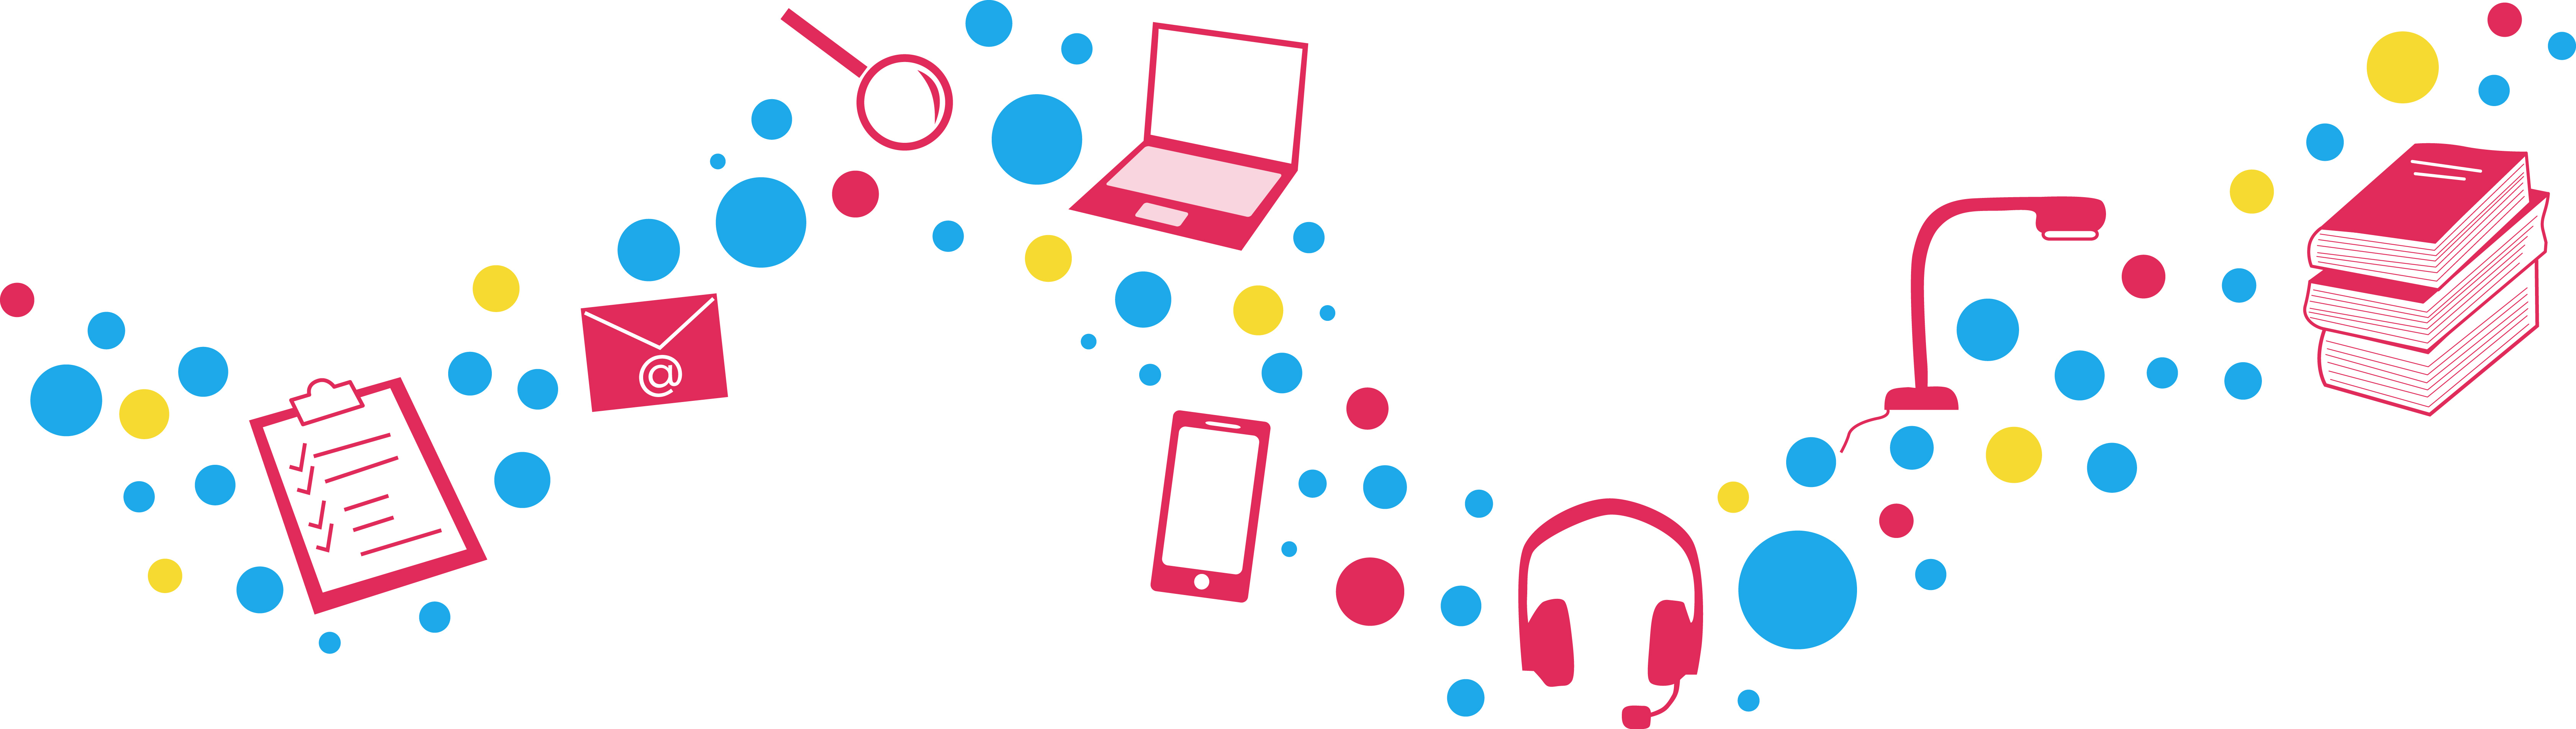 Different icons in a wavy line with bubbles in pink, blue and yellow